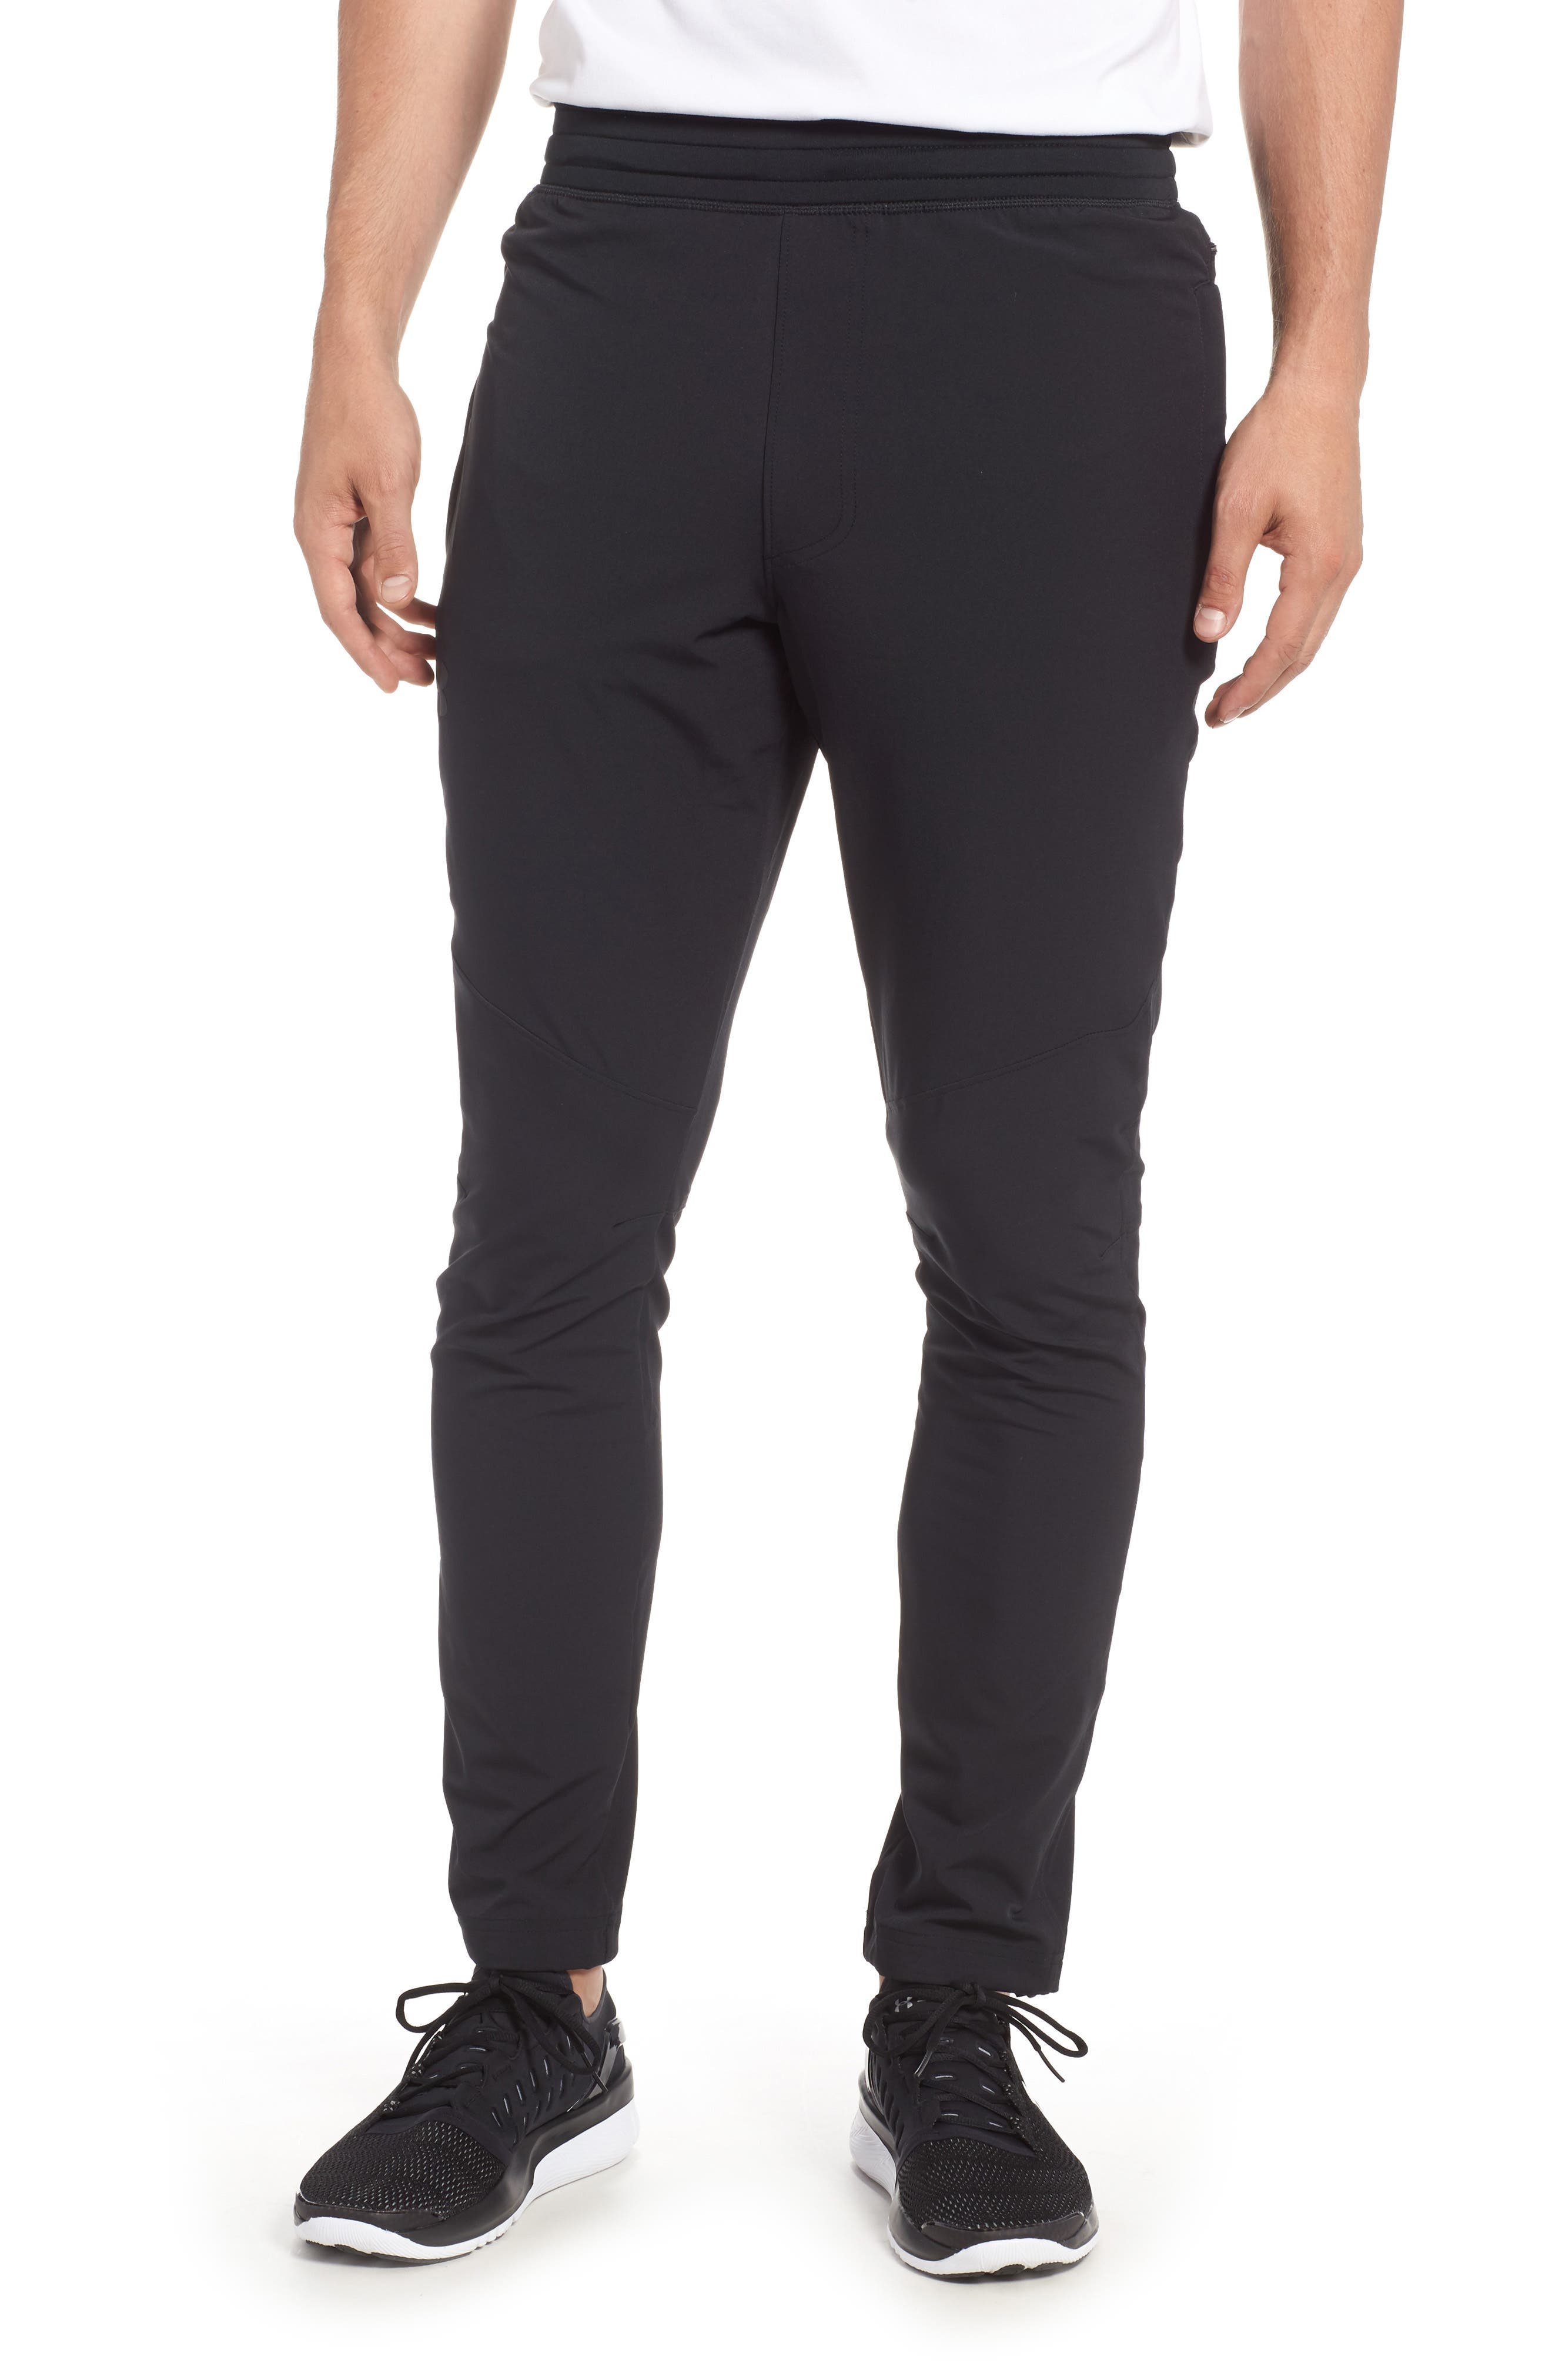 Main Image - Under Armour Fitted Woven Training Pants